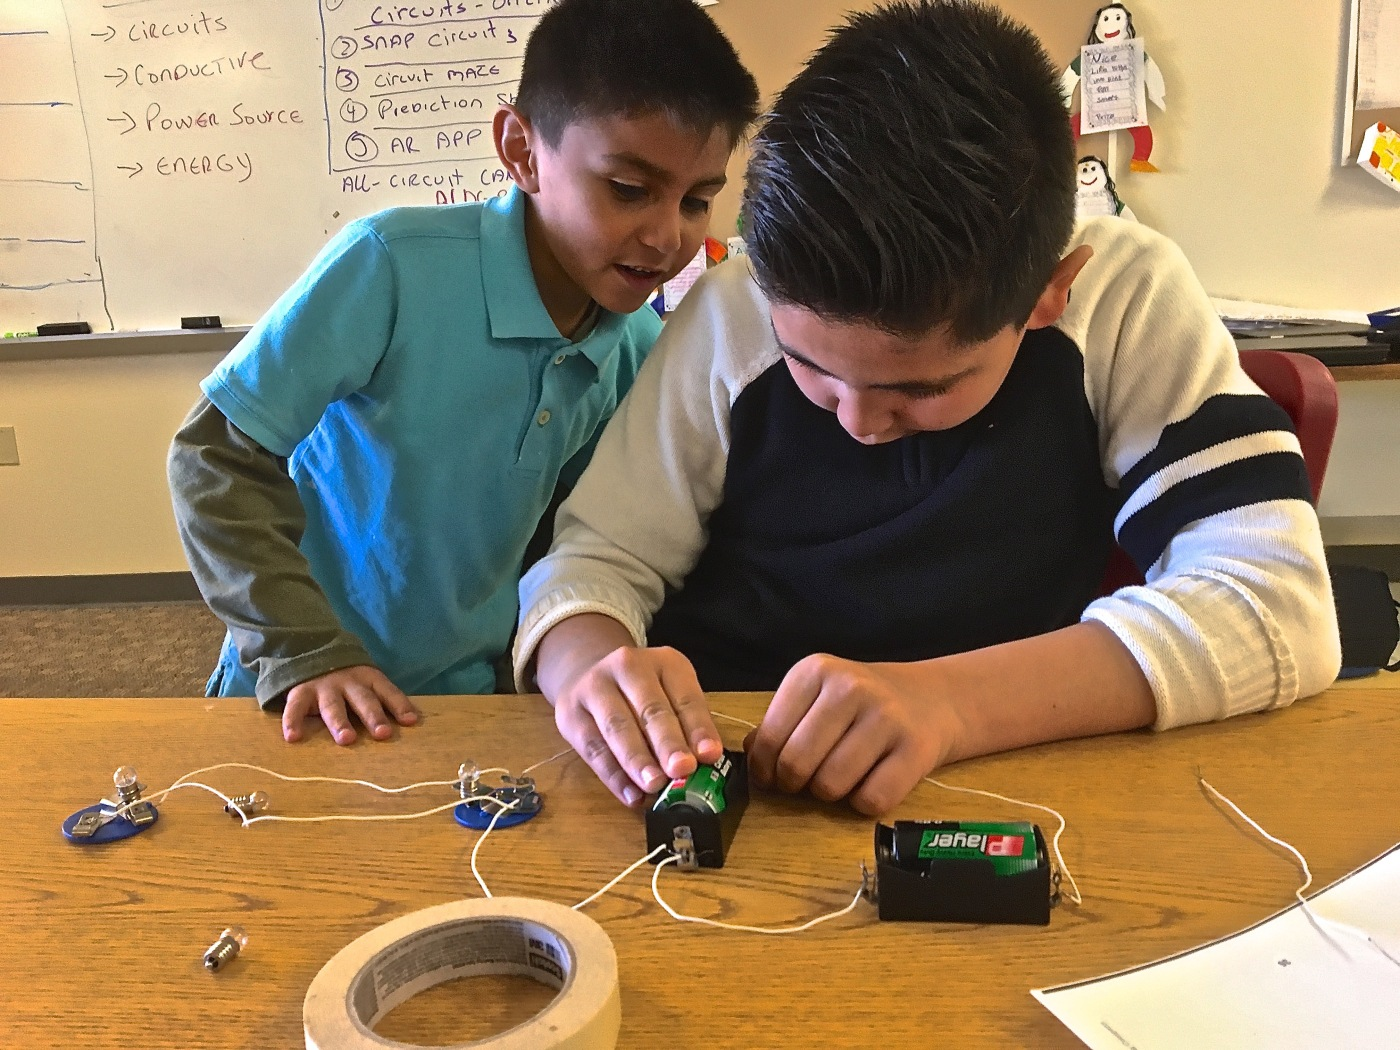 Maker Education Camp Circuit Crafts User Generated Learning Electricity Electrical Circuits